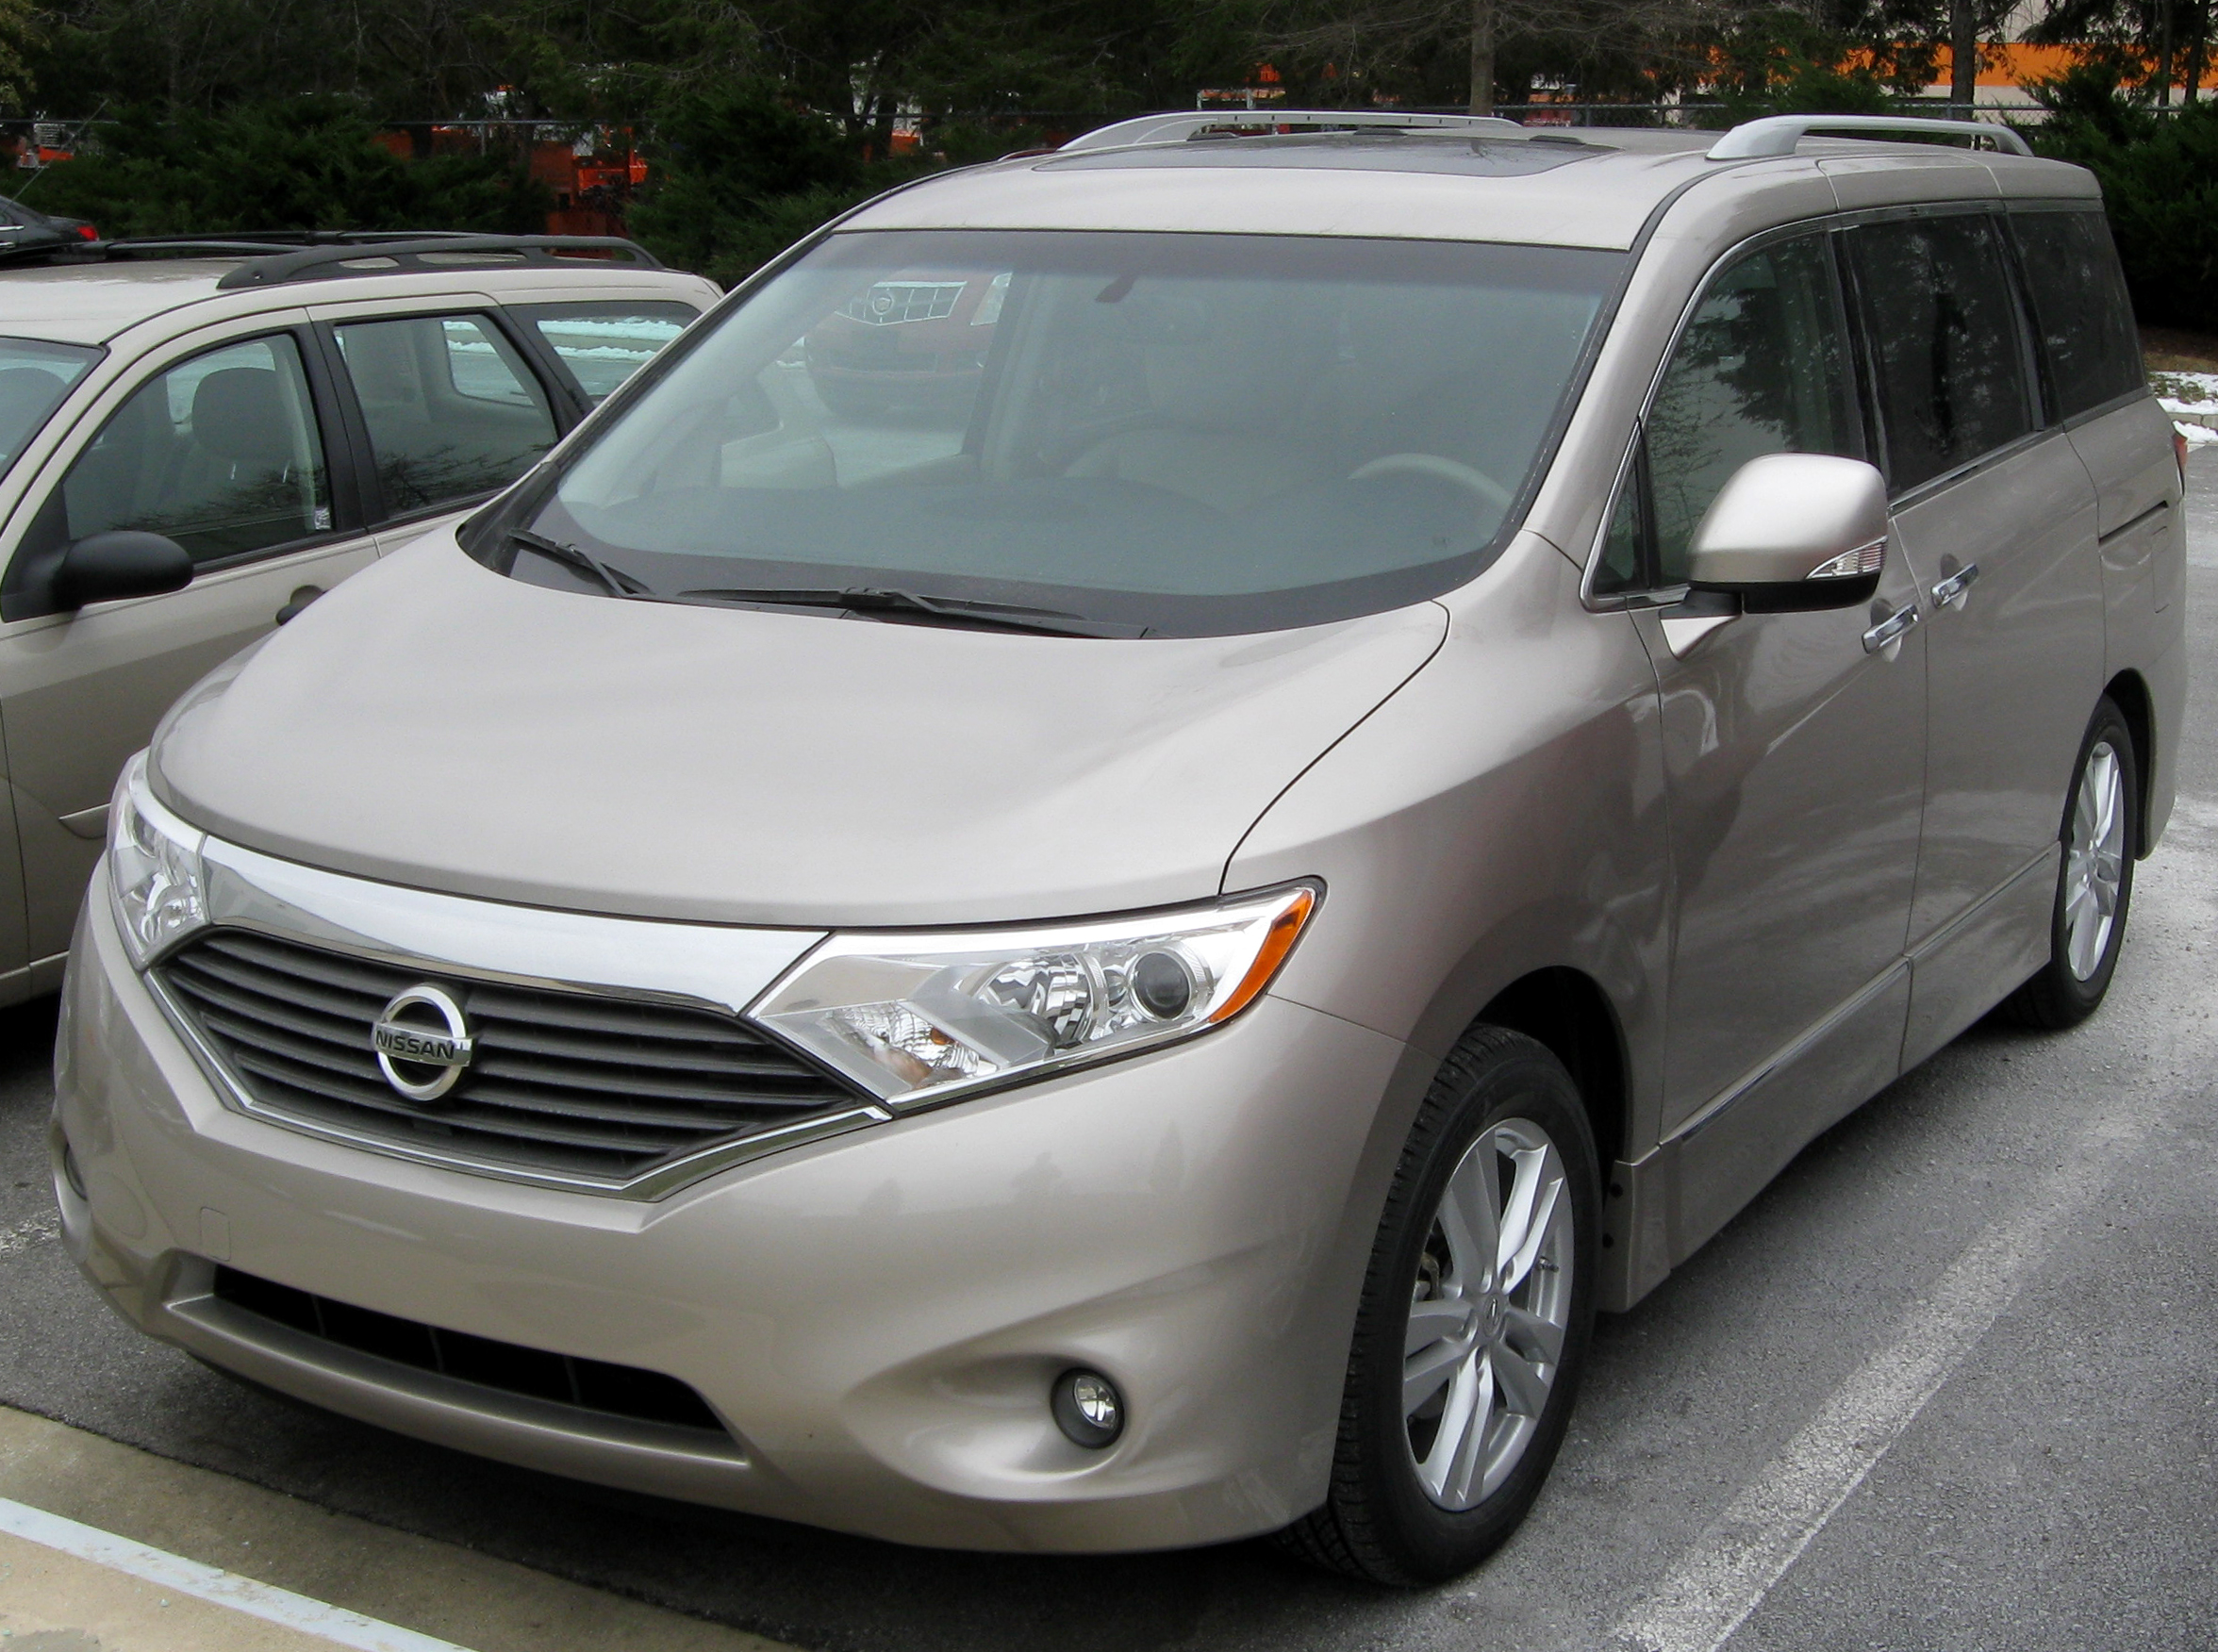 file:2011 nissan quest le -- 12-22-2010 - wikimedia commons